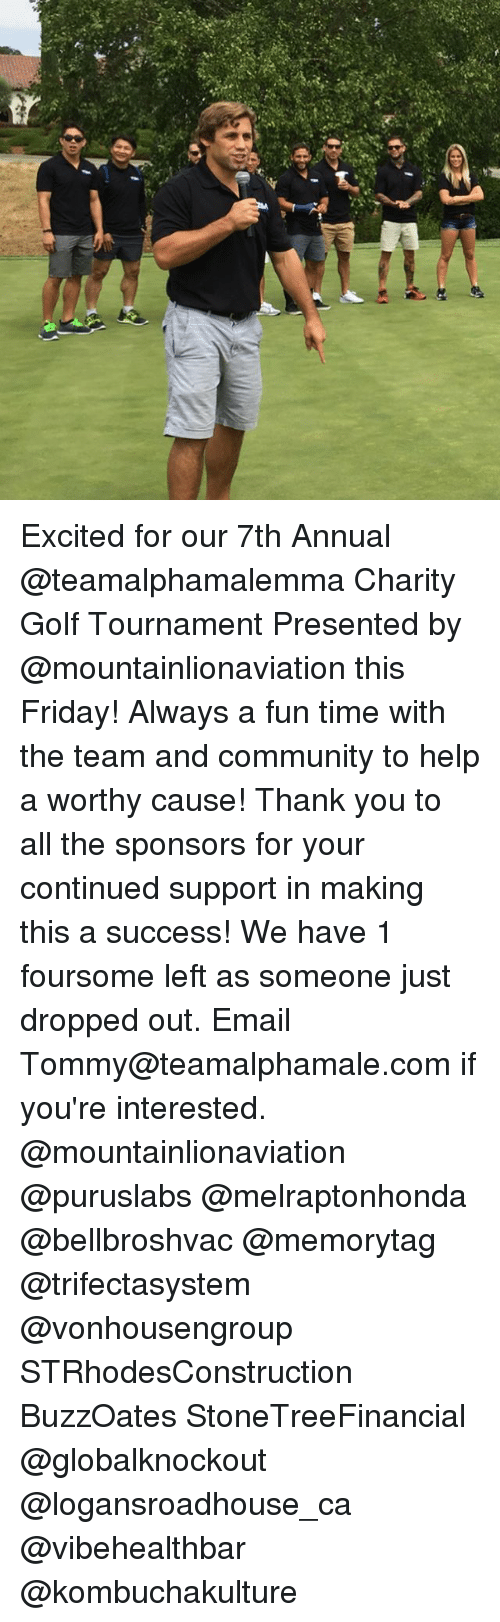 Community, Friday, and Memes: Excited for our 7th Annual @teamalphamalemma Charity Golf Tournament Presented by @mountainlionaviation this Friday! Always a fun time with the team and community to help a worthy cause! Thank you to all the sponsors for your continued support in making this a success! We have 1 foursome left as someone just dropped out. Email Tommy@teamalphamale.com if you're interested. @mountainlionaviation @puruslabs @melraptonhonda @bellbroshvac @memorytag @trifectasystem @vonhousengroup STRhodesConstruction BuzzOates StoneTreeFinancial @globalknockout @logansroadhouse_ca @vibehealthbar @kombuchakulture